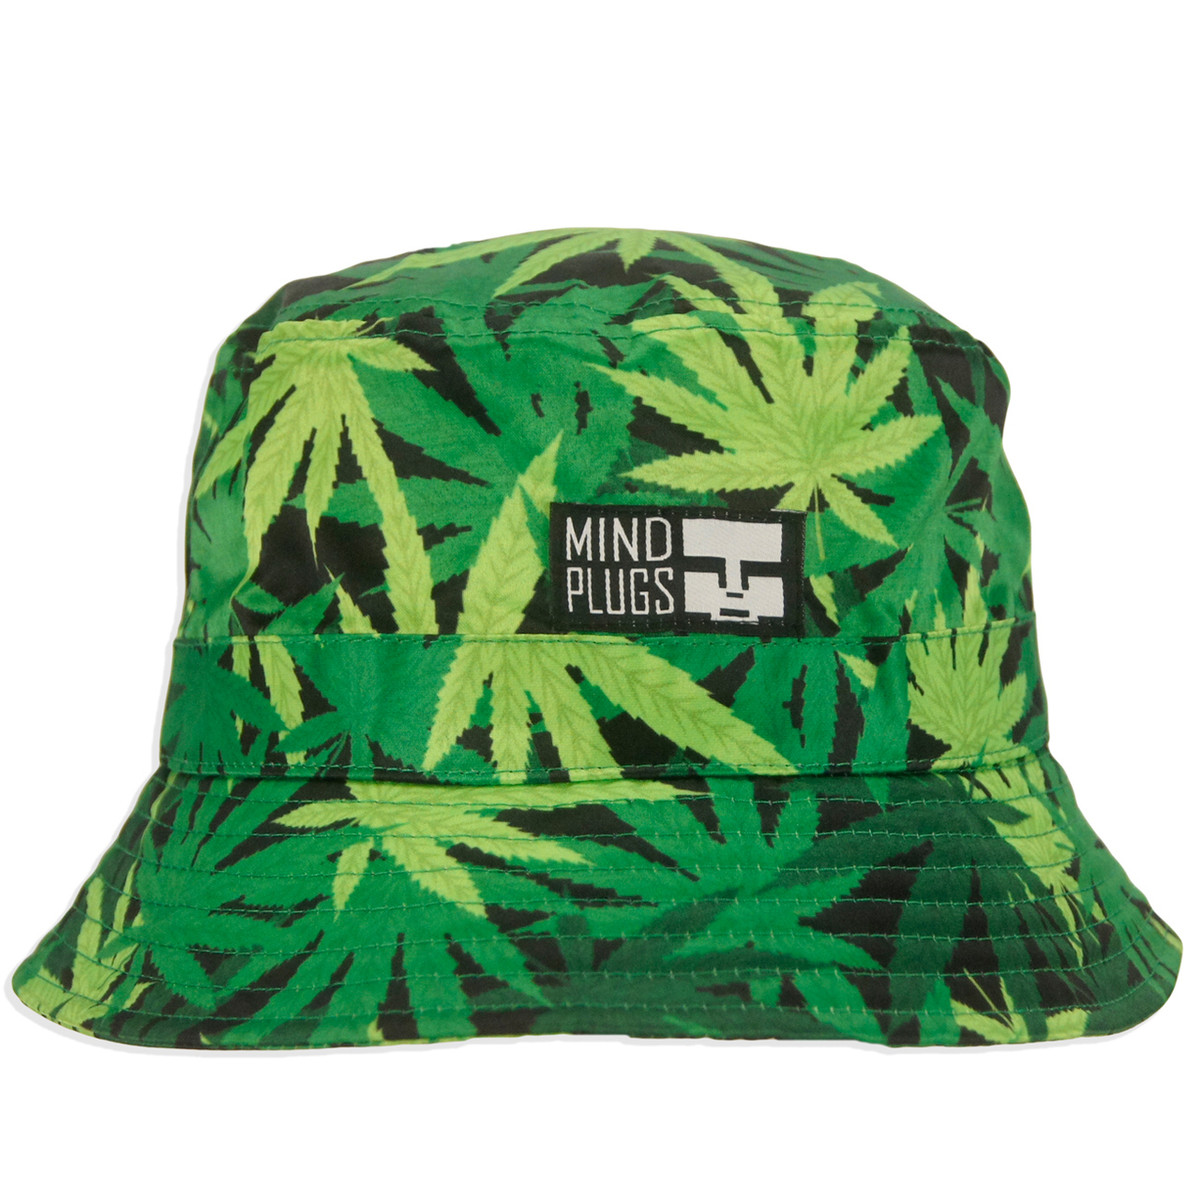 d576e483b48 Ganja Leaf All Over Graphic Print With A Soft Cotton Lining For Comfort.